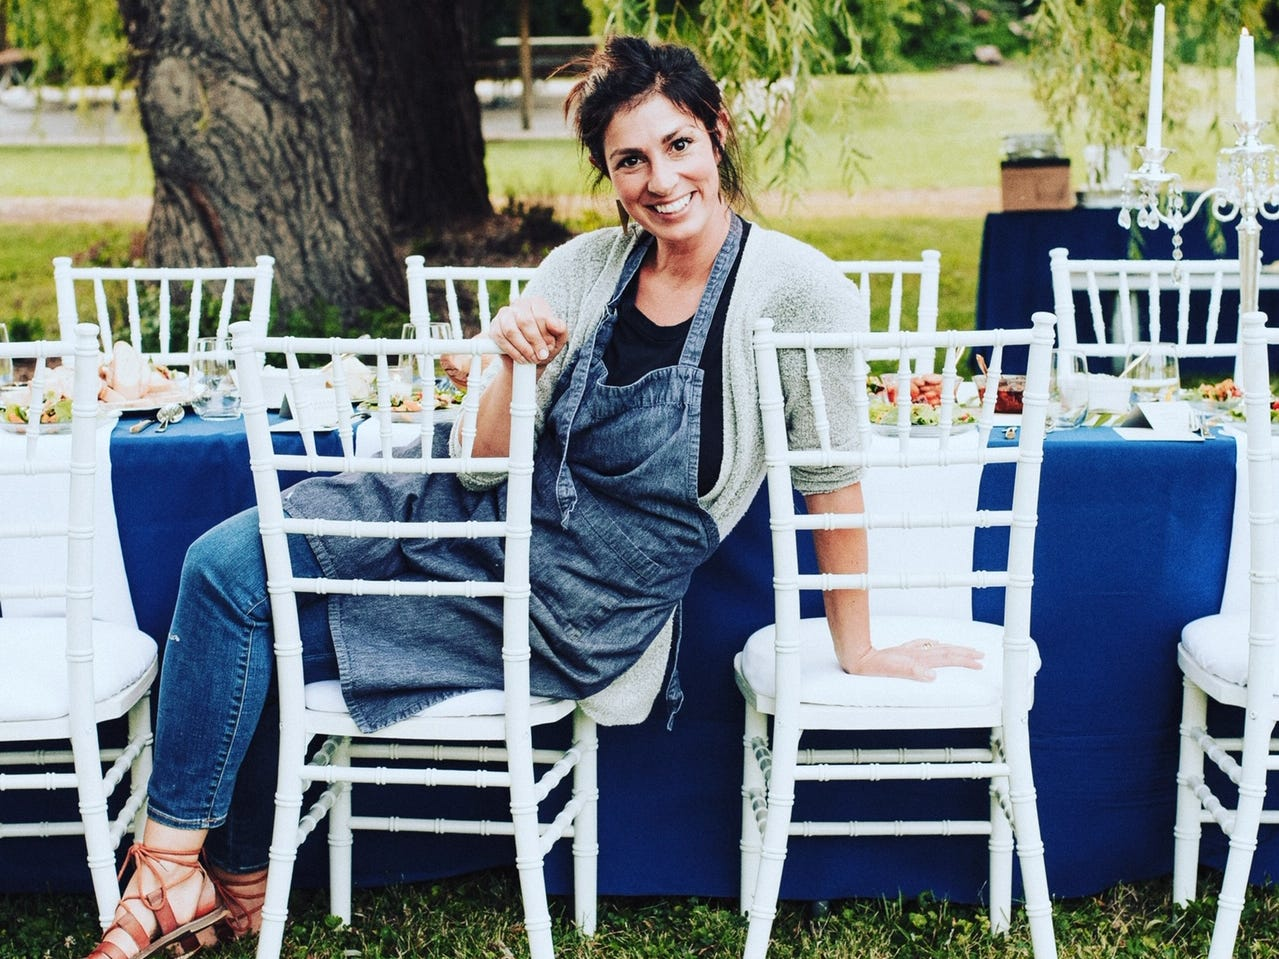 Krysta Hutton poses while setting up a murder mystery party she catered.